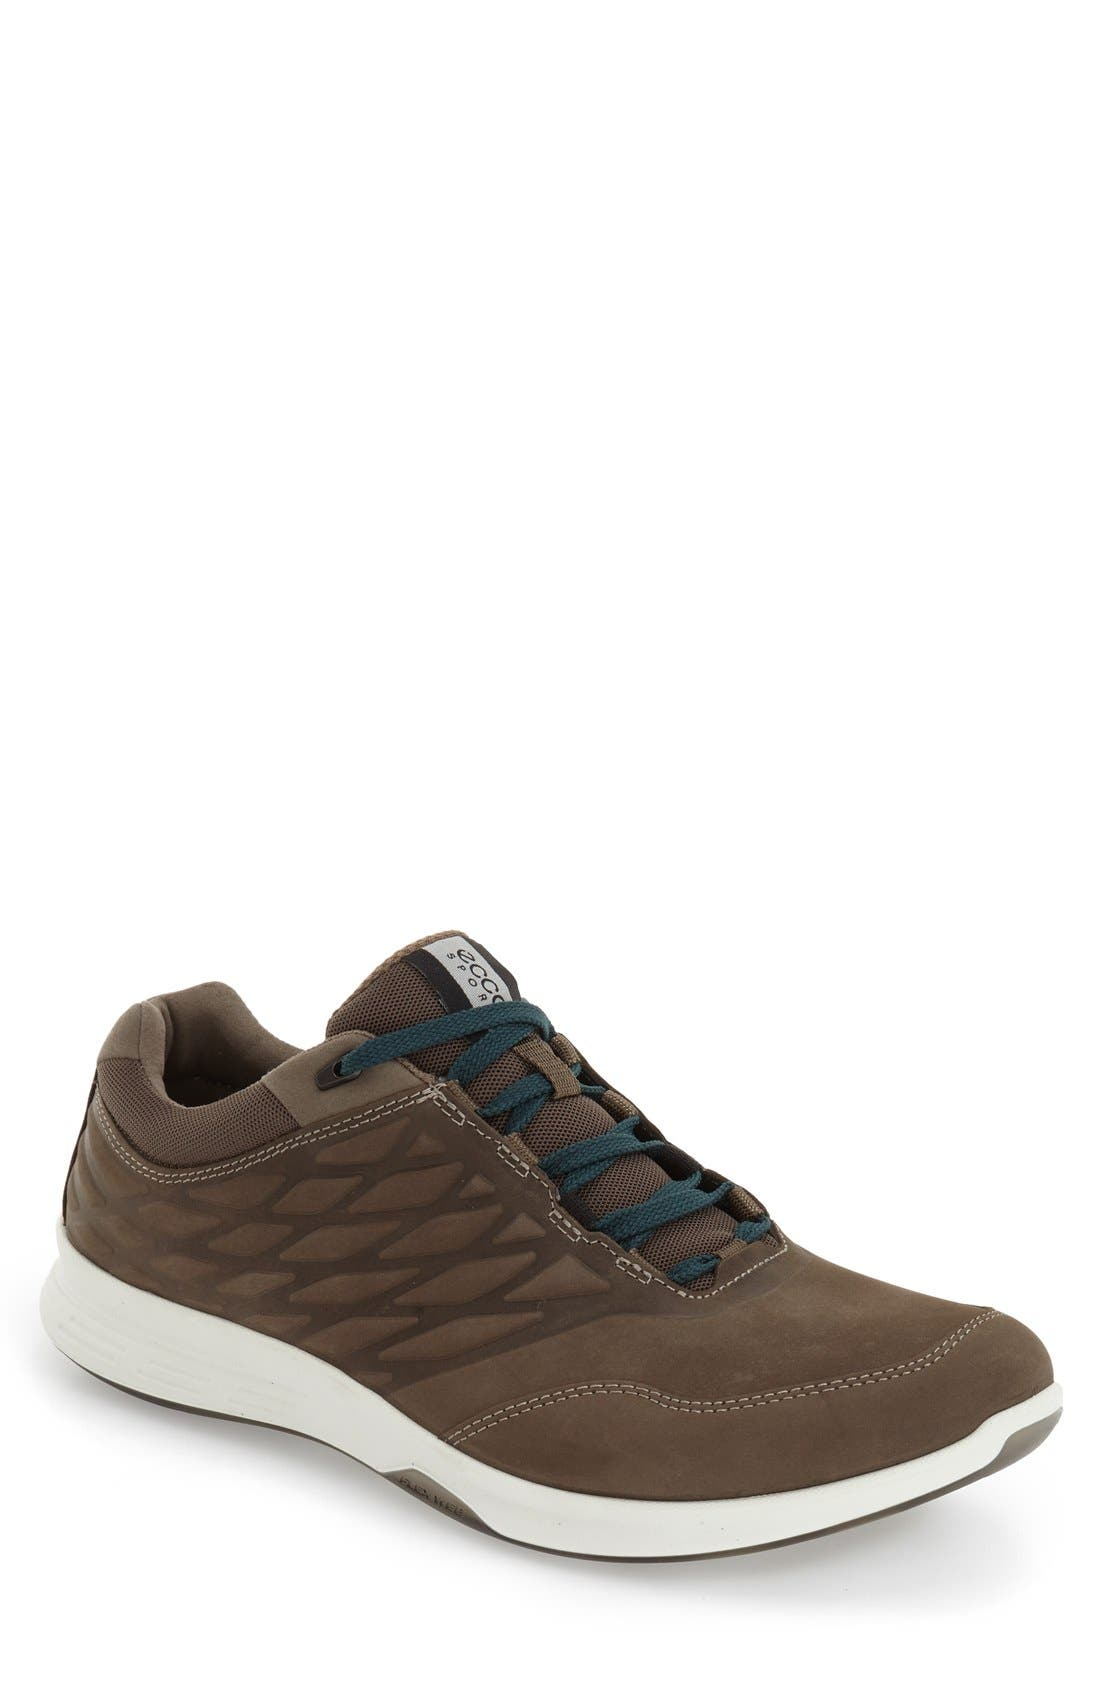 'Exceed' Leather Sneaker,                         Main,                         color, 200